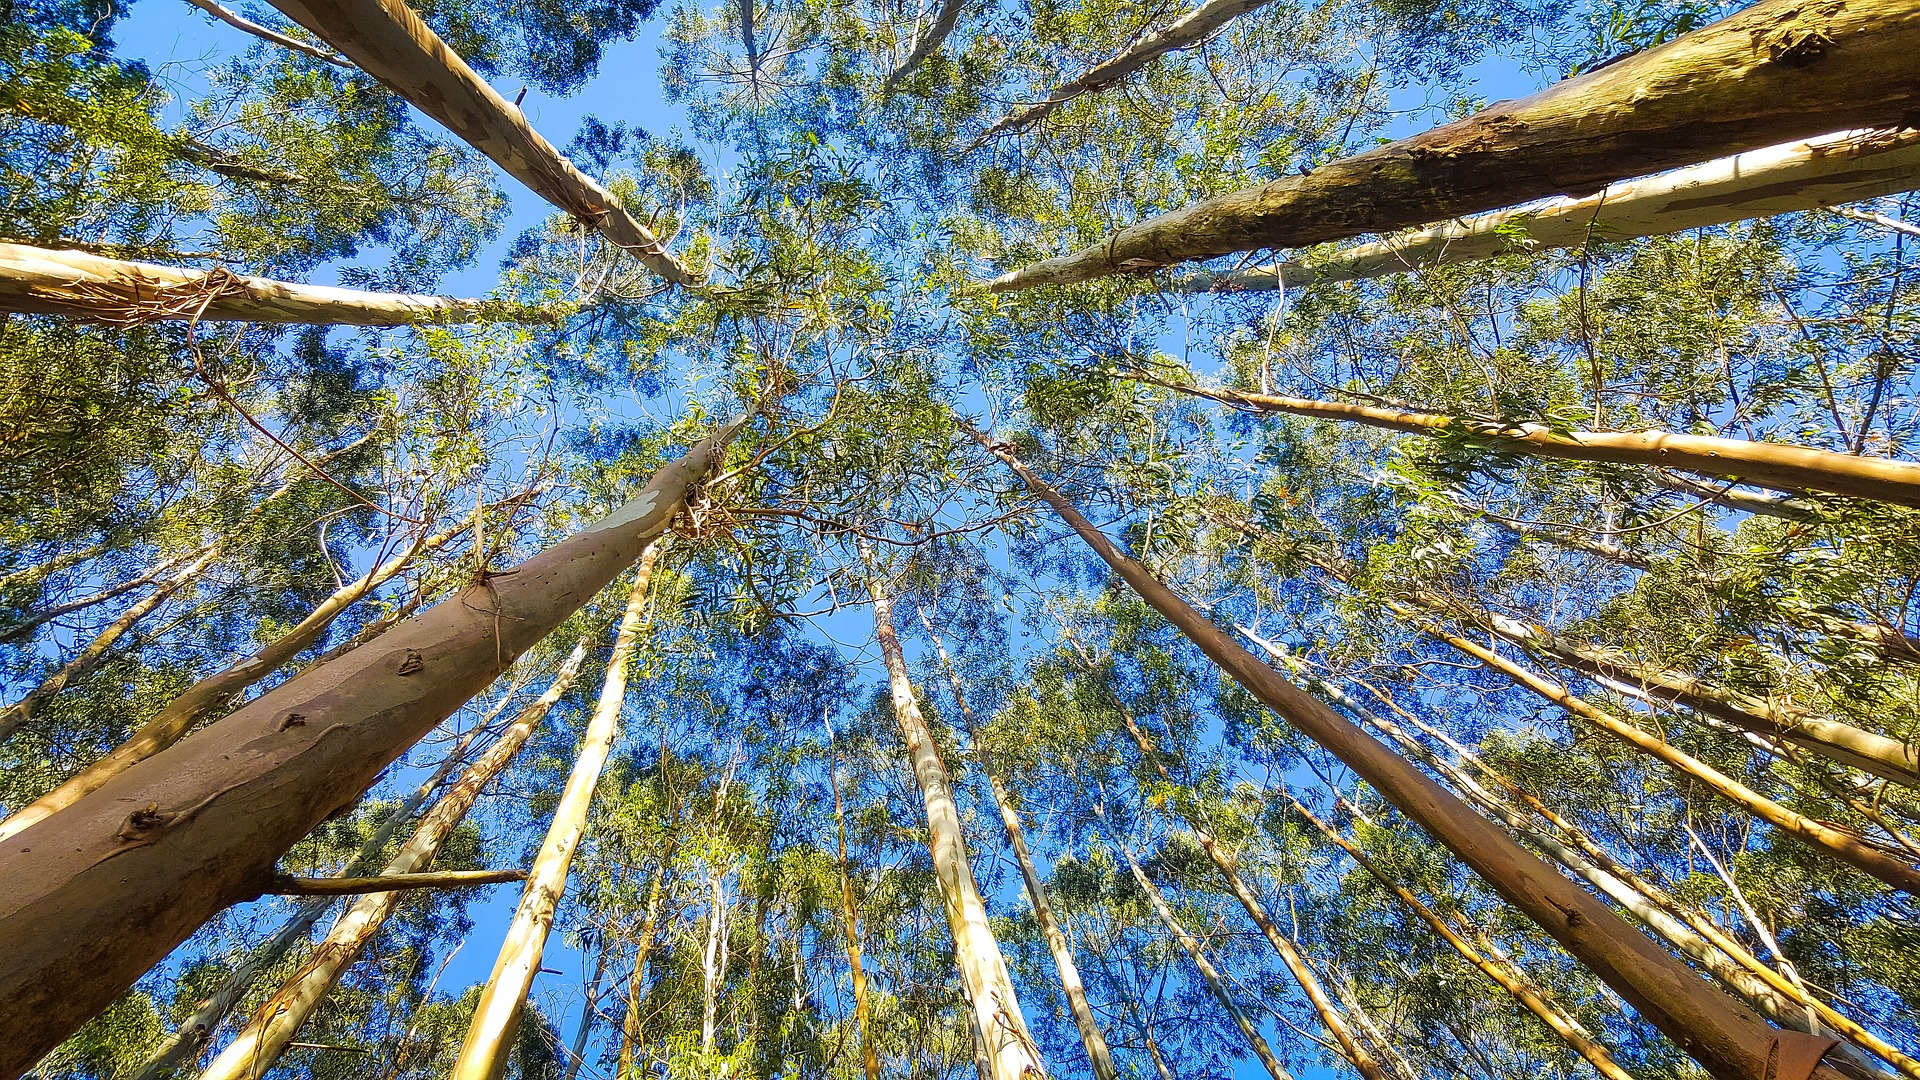 In extreme heat, trees stop sucking carbon from the air